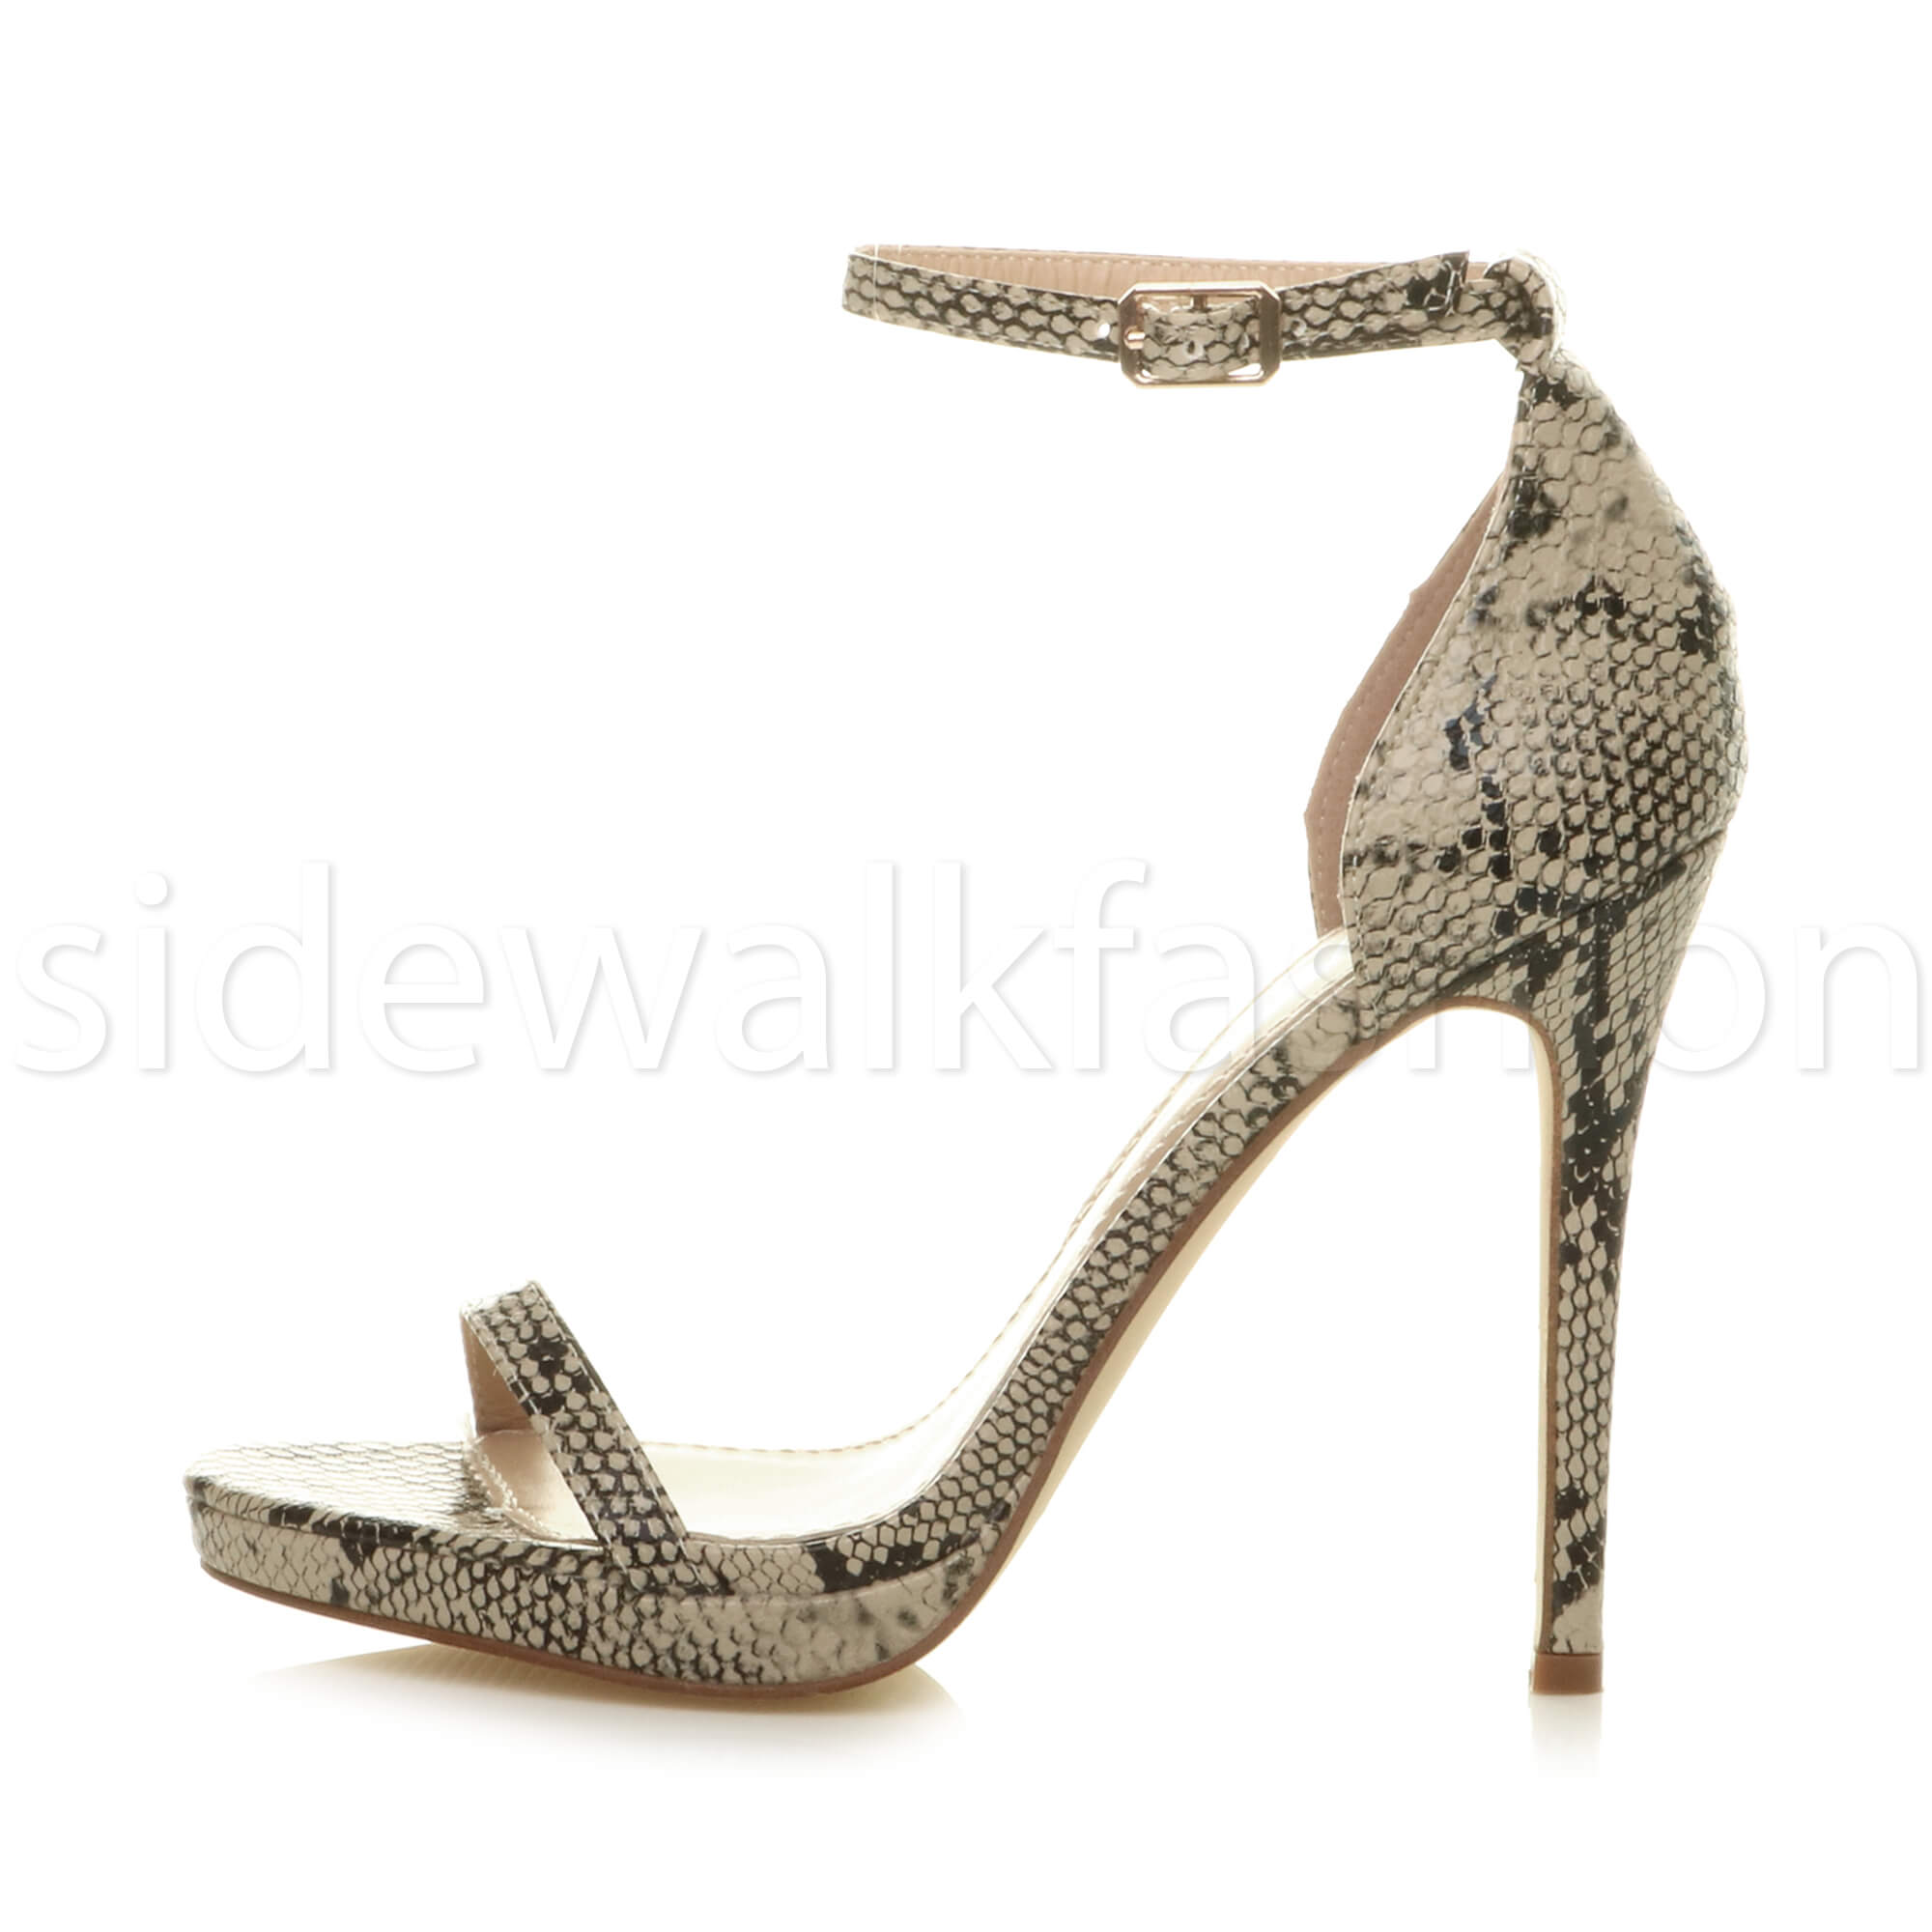 Womens-ladies-high-heel-barely-there-strappy-party-peep-toe-shoes-sandals-size thumbnail 3